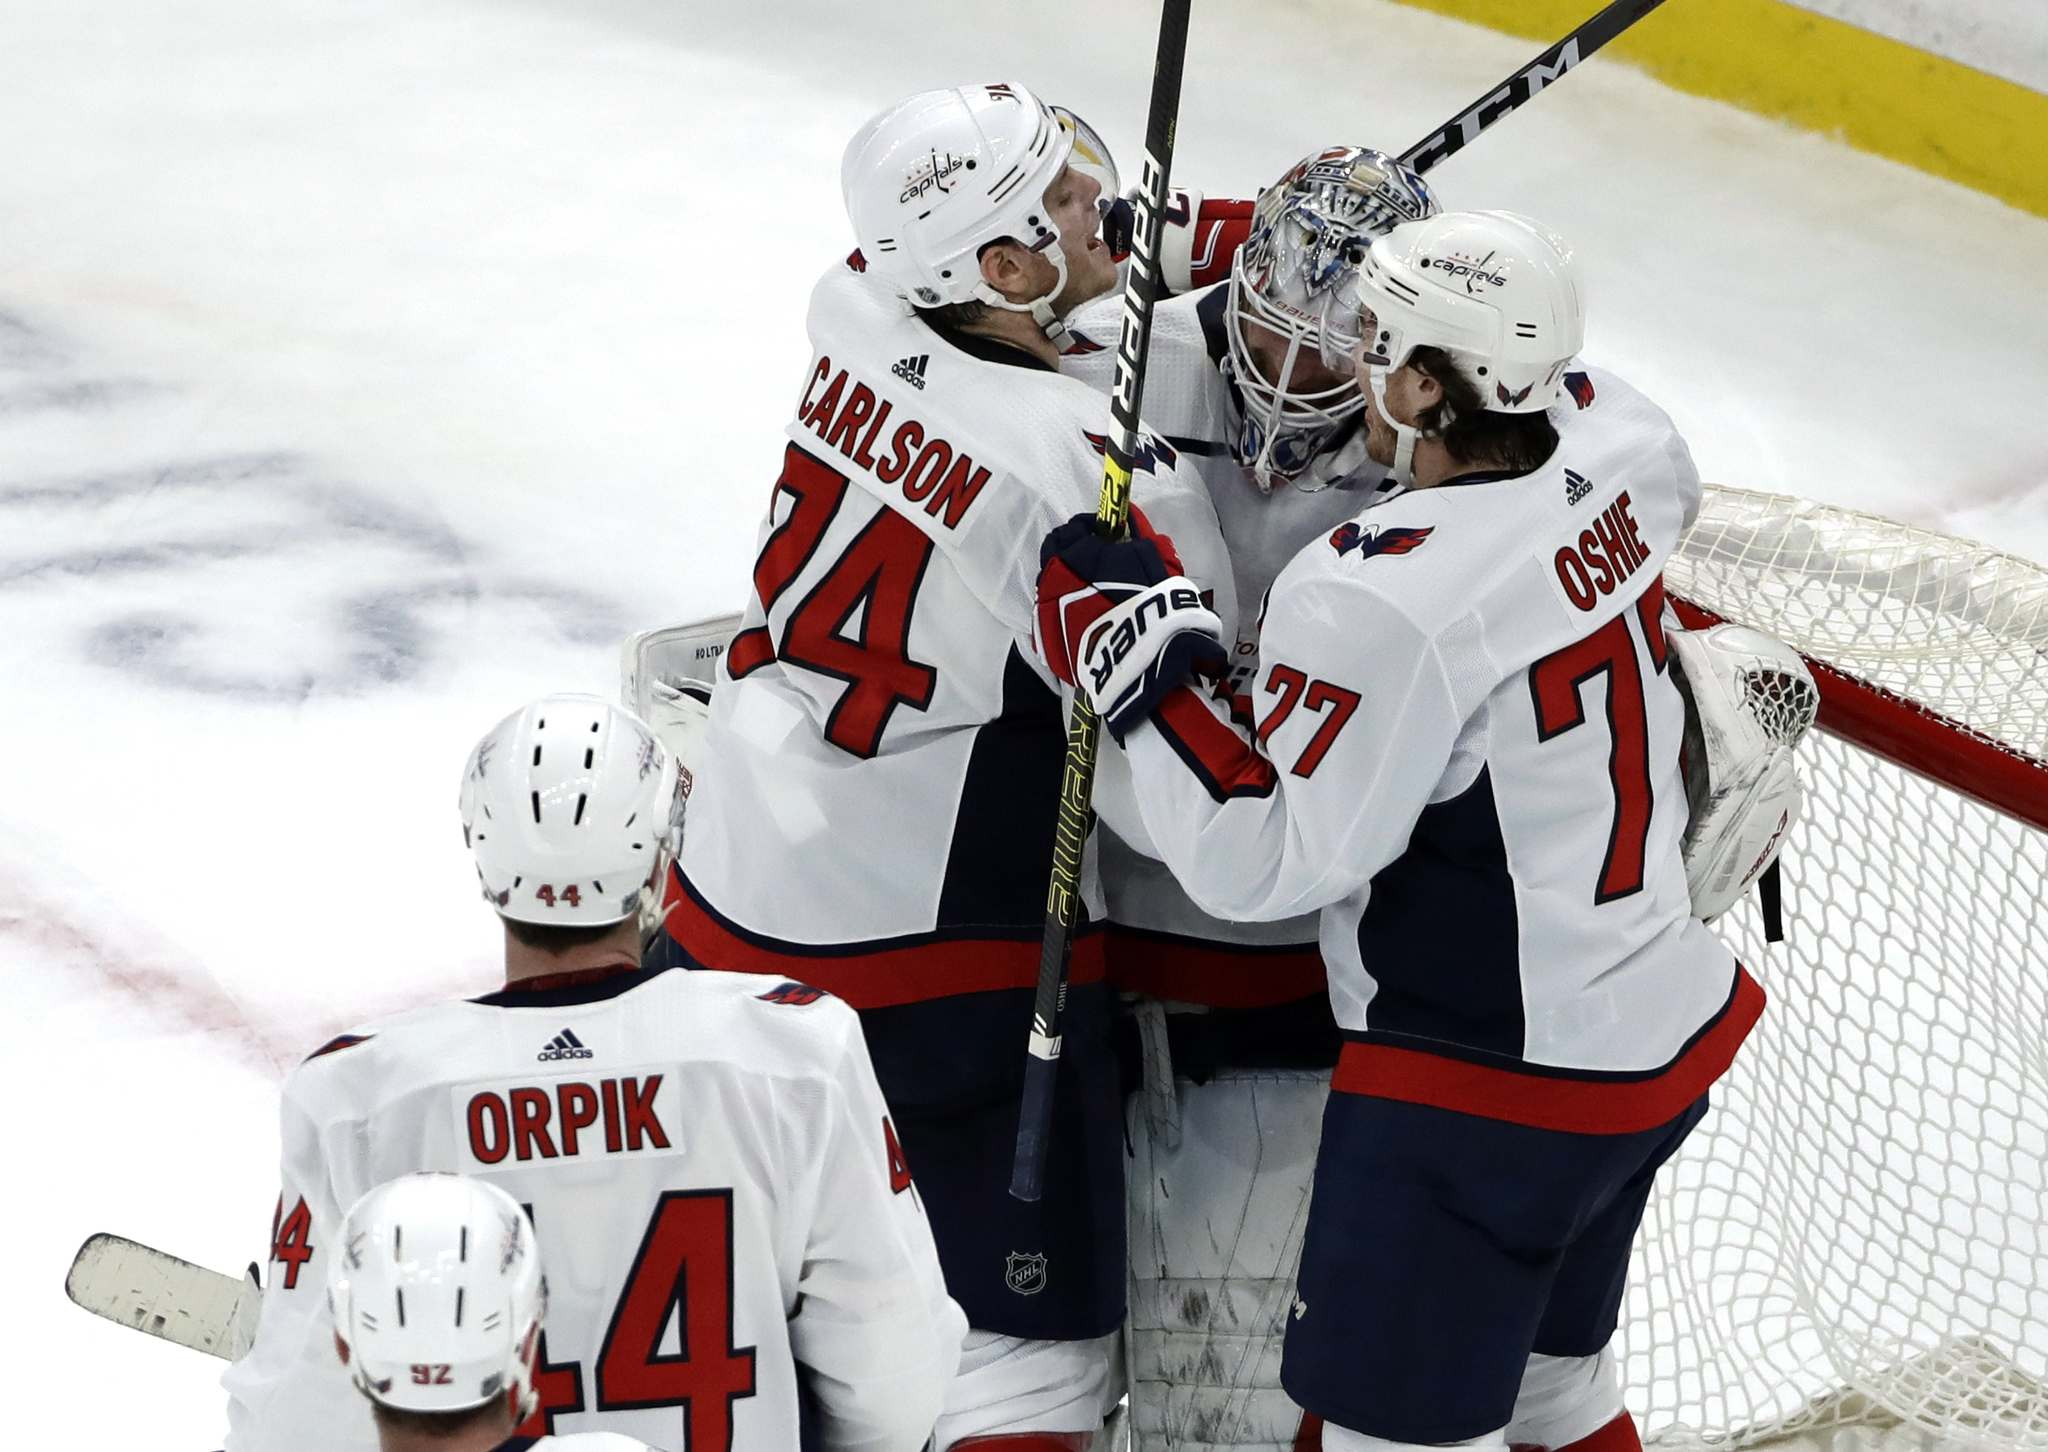 Elise Amendola / The Associated Press</p><p>The Washington Capitals are far above league average in shooting and save percentages, making them the luckiest shooting team in the league.</p>